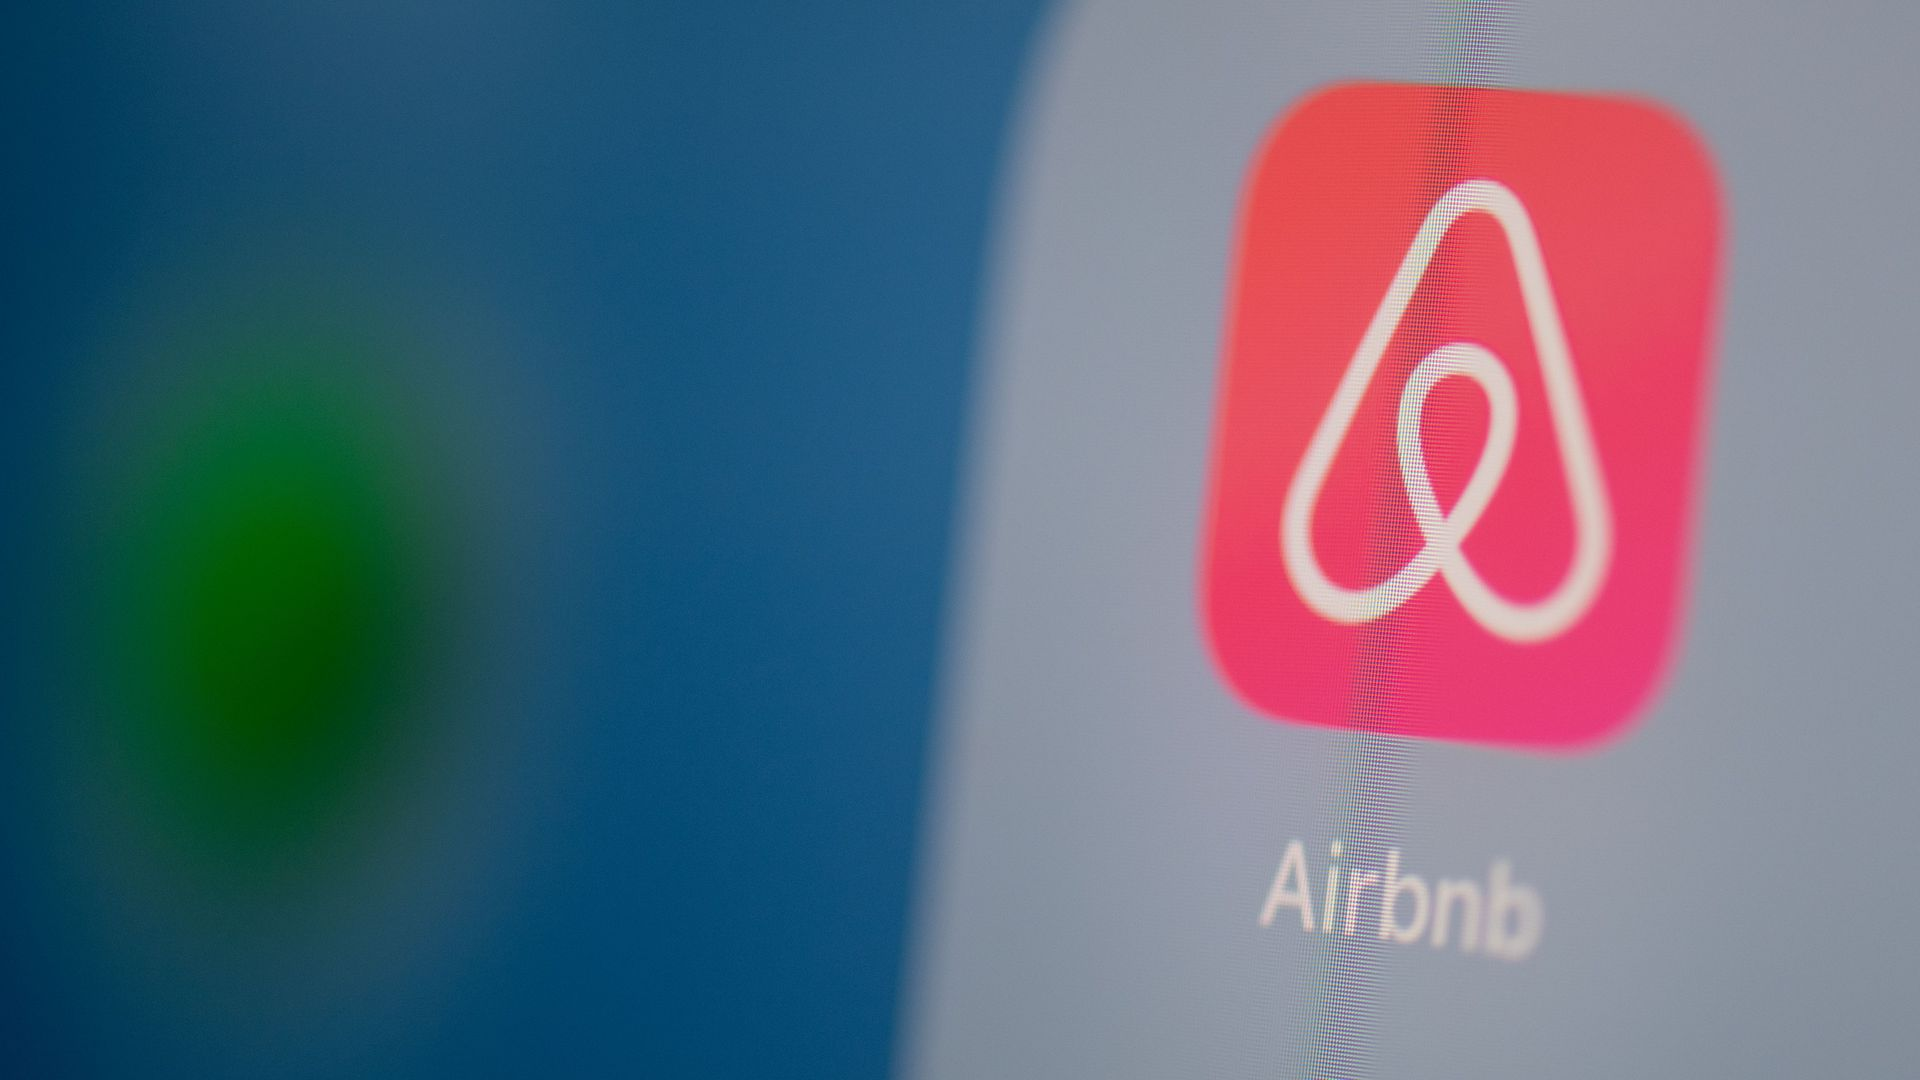 In this image, the Airbnb app is displayed on a smartphone.